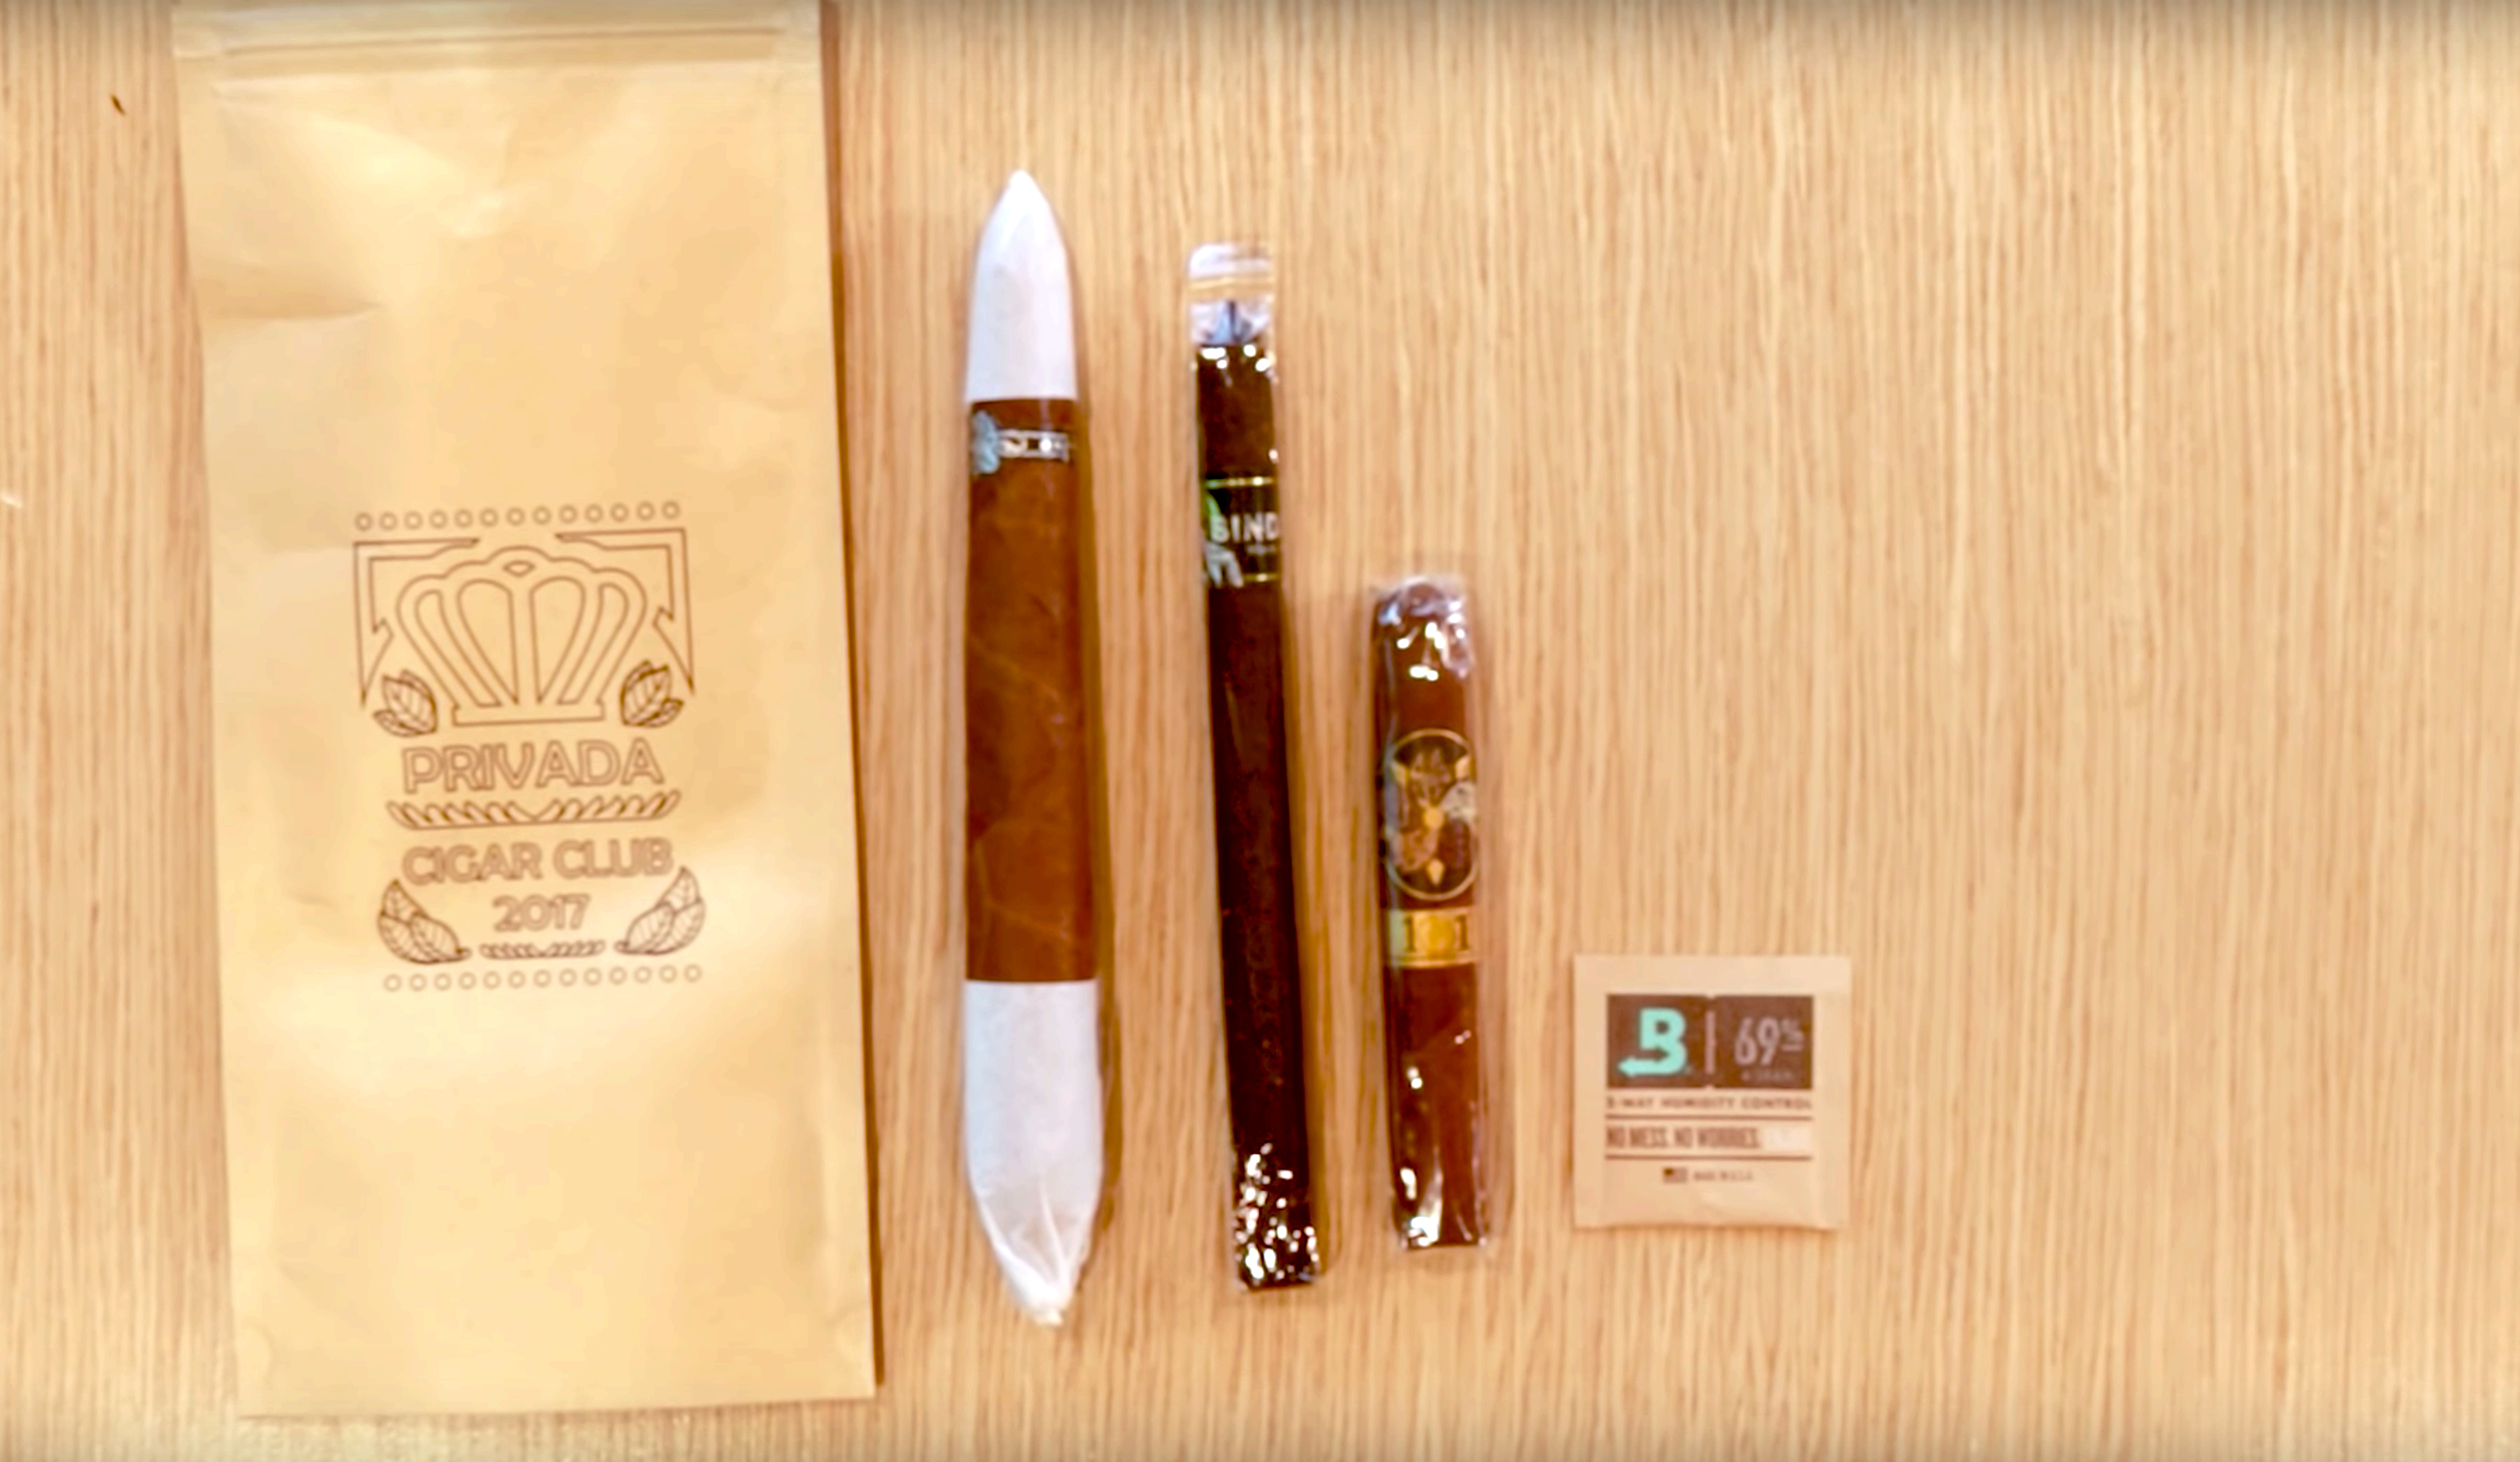 Privada Cigar Club sends 3 cigars (most of them aged or hard-to-find smokes), along with tasting notes and pairing ideas. Boveda keeps all the hand-picked cigars fresh in transit and until they're ready to smoke.